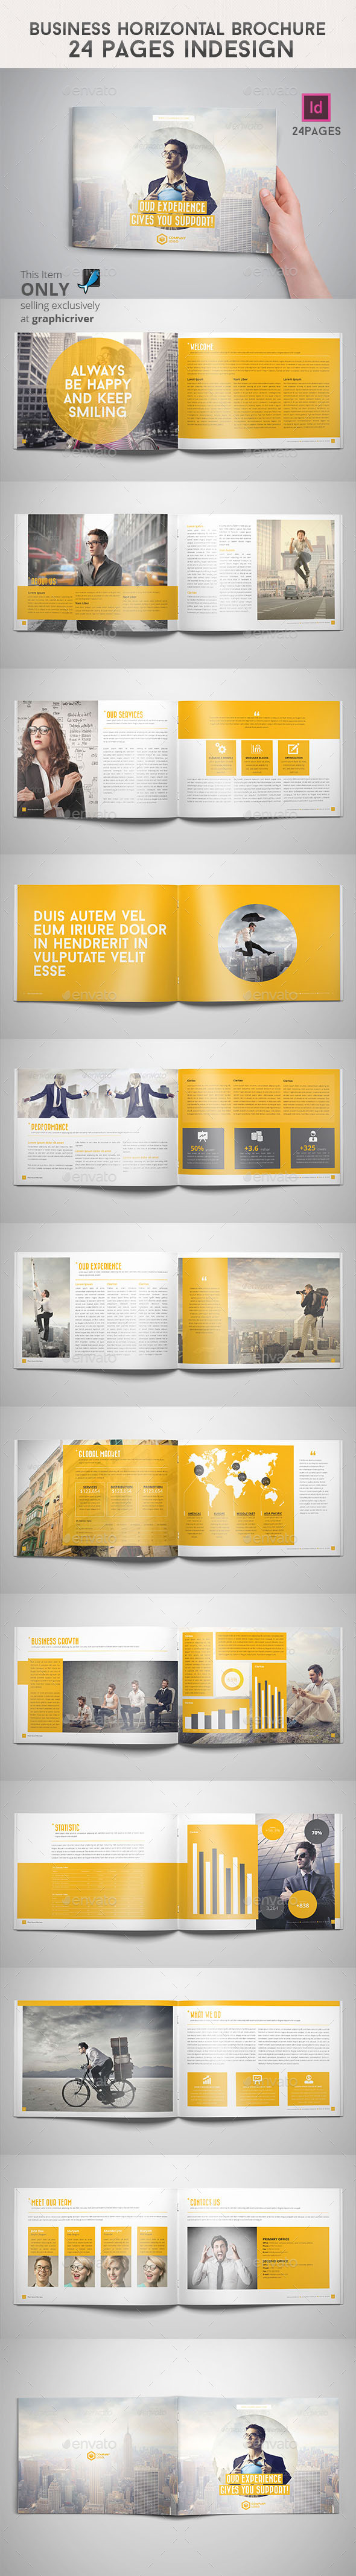 Business Horizontal Brochure 24 Pages Indesign - Informational Brochures